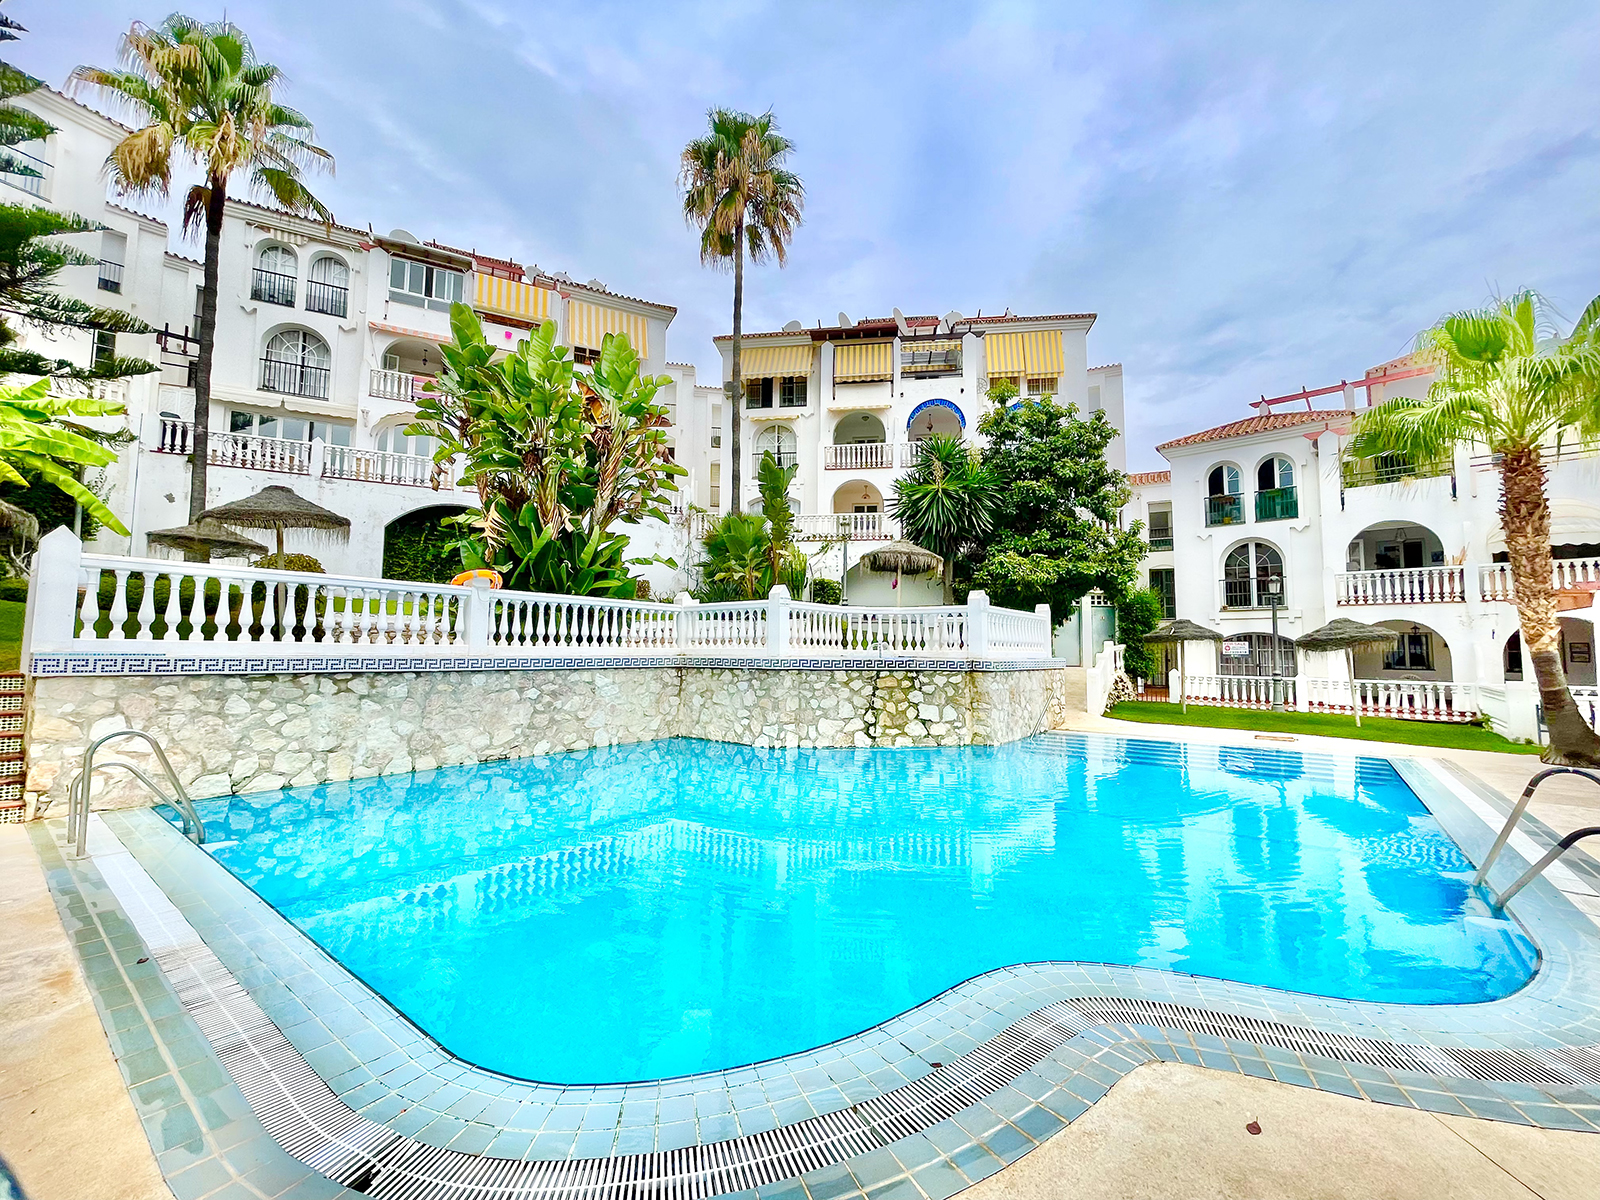 Lovely & Cozy Townhouse in Private Community in Riviera del Sol